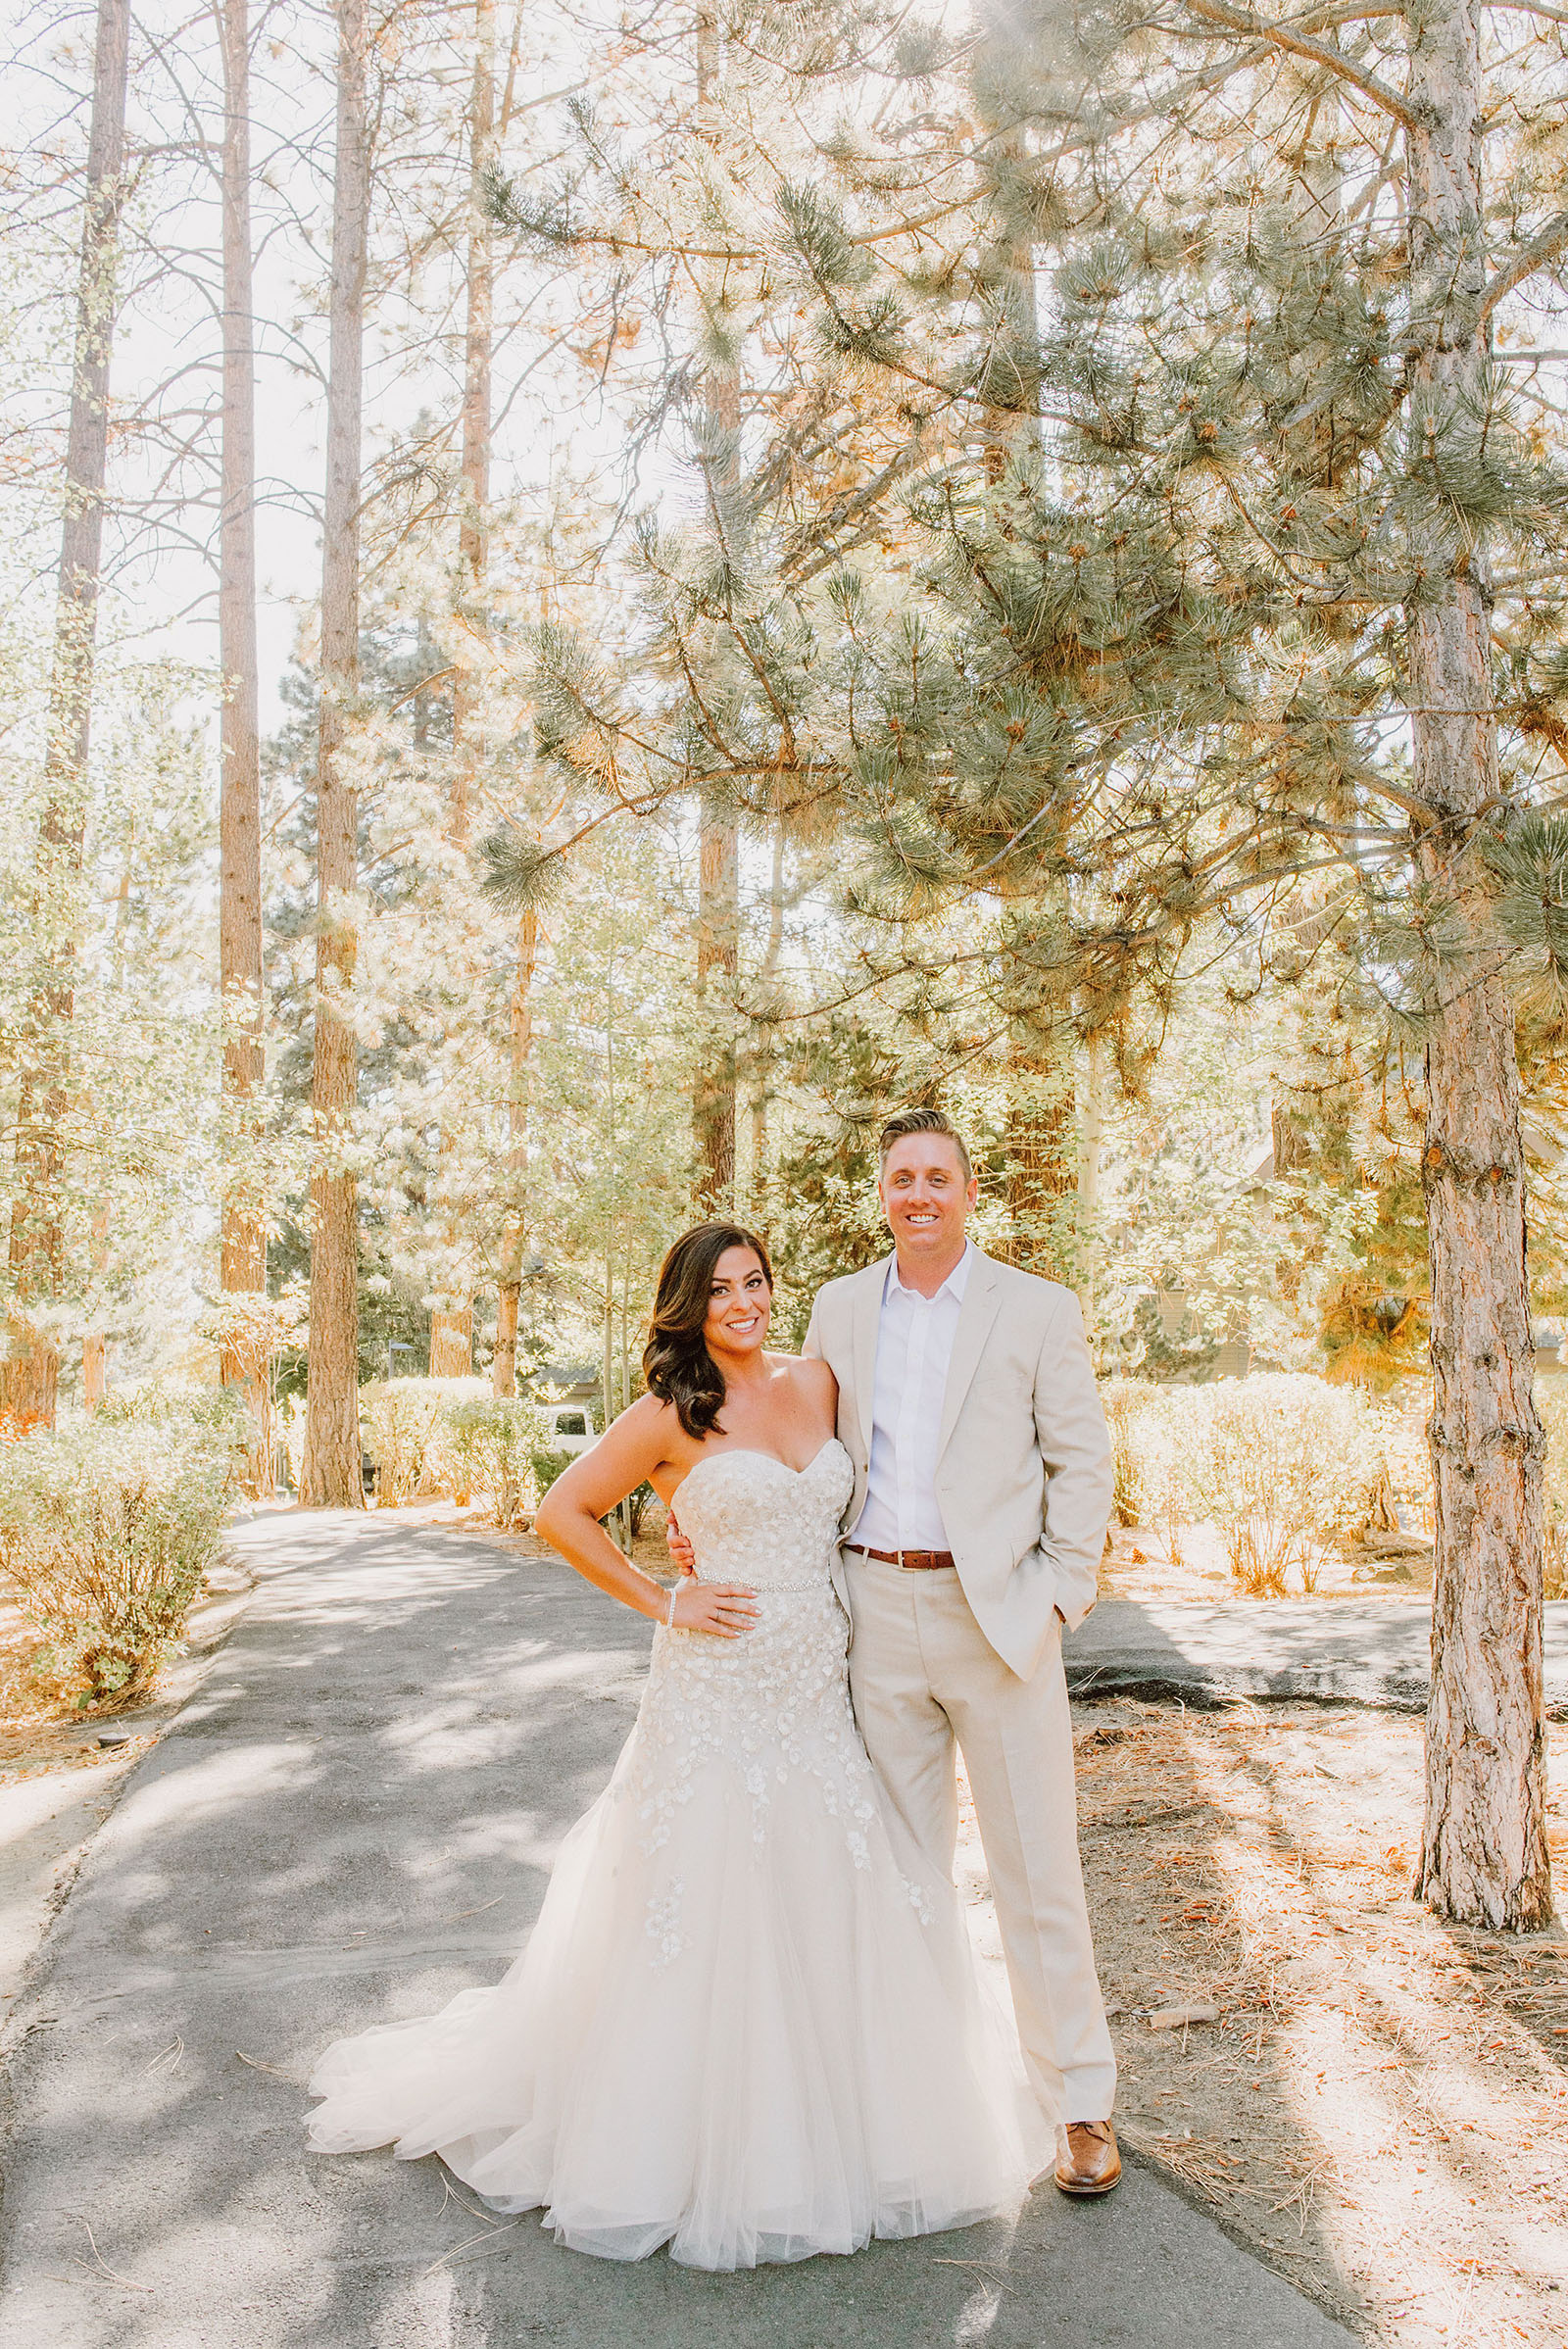 Portrait of bride and groom in the pine trees at their Incline Village Wedding in North Lake Tahoe